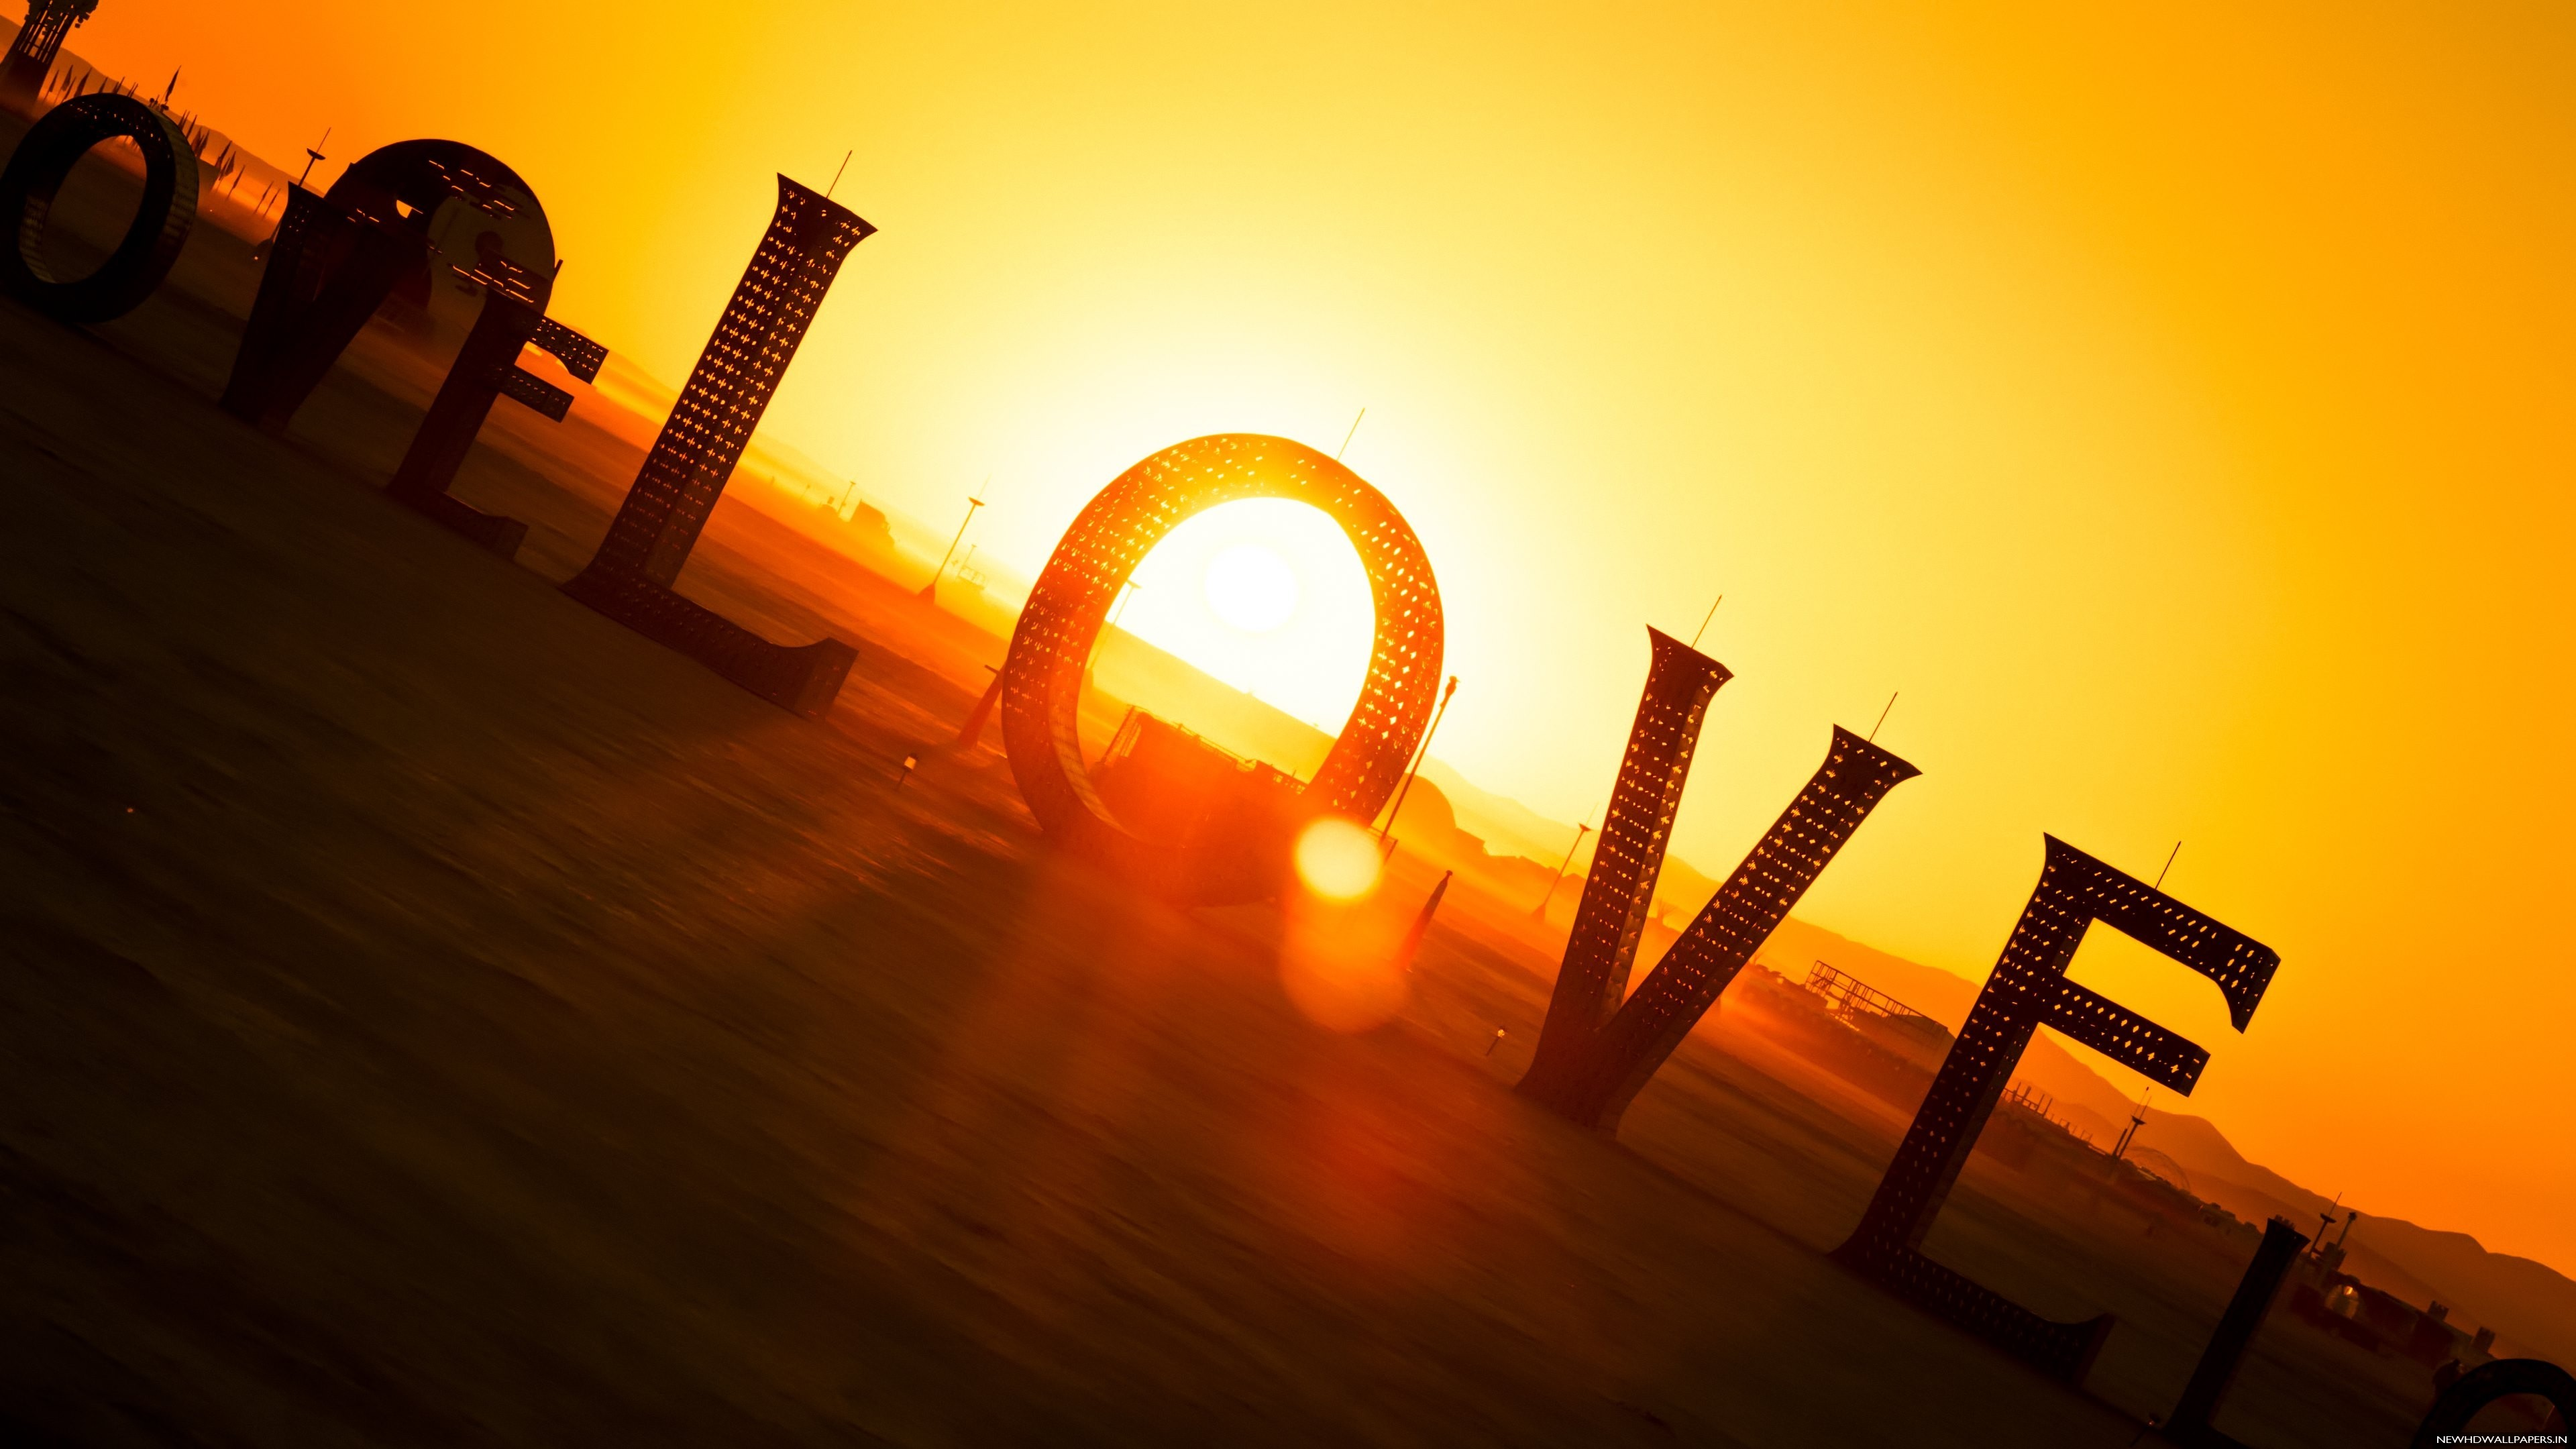 Burning Love Hd Wallpapers: [45+] Burning Man Wallpaper On WallpaperSafari